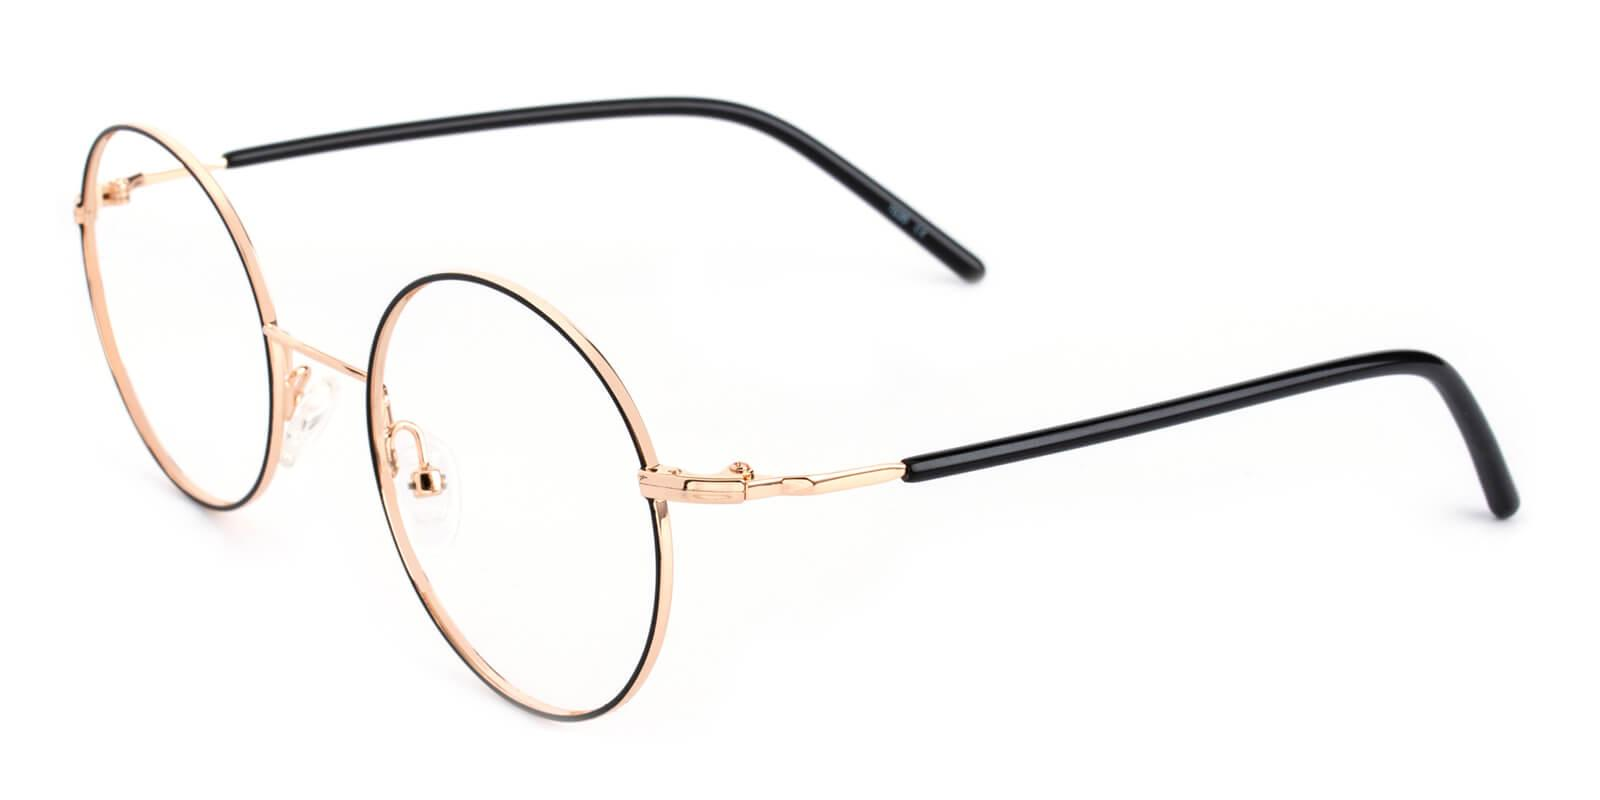 Maddy-Multicolor-Round-Metal-Eyeglasses-additional1